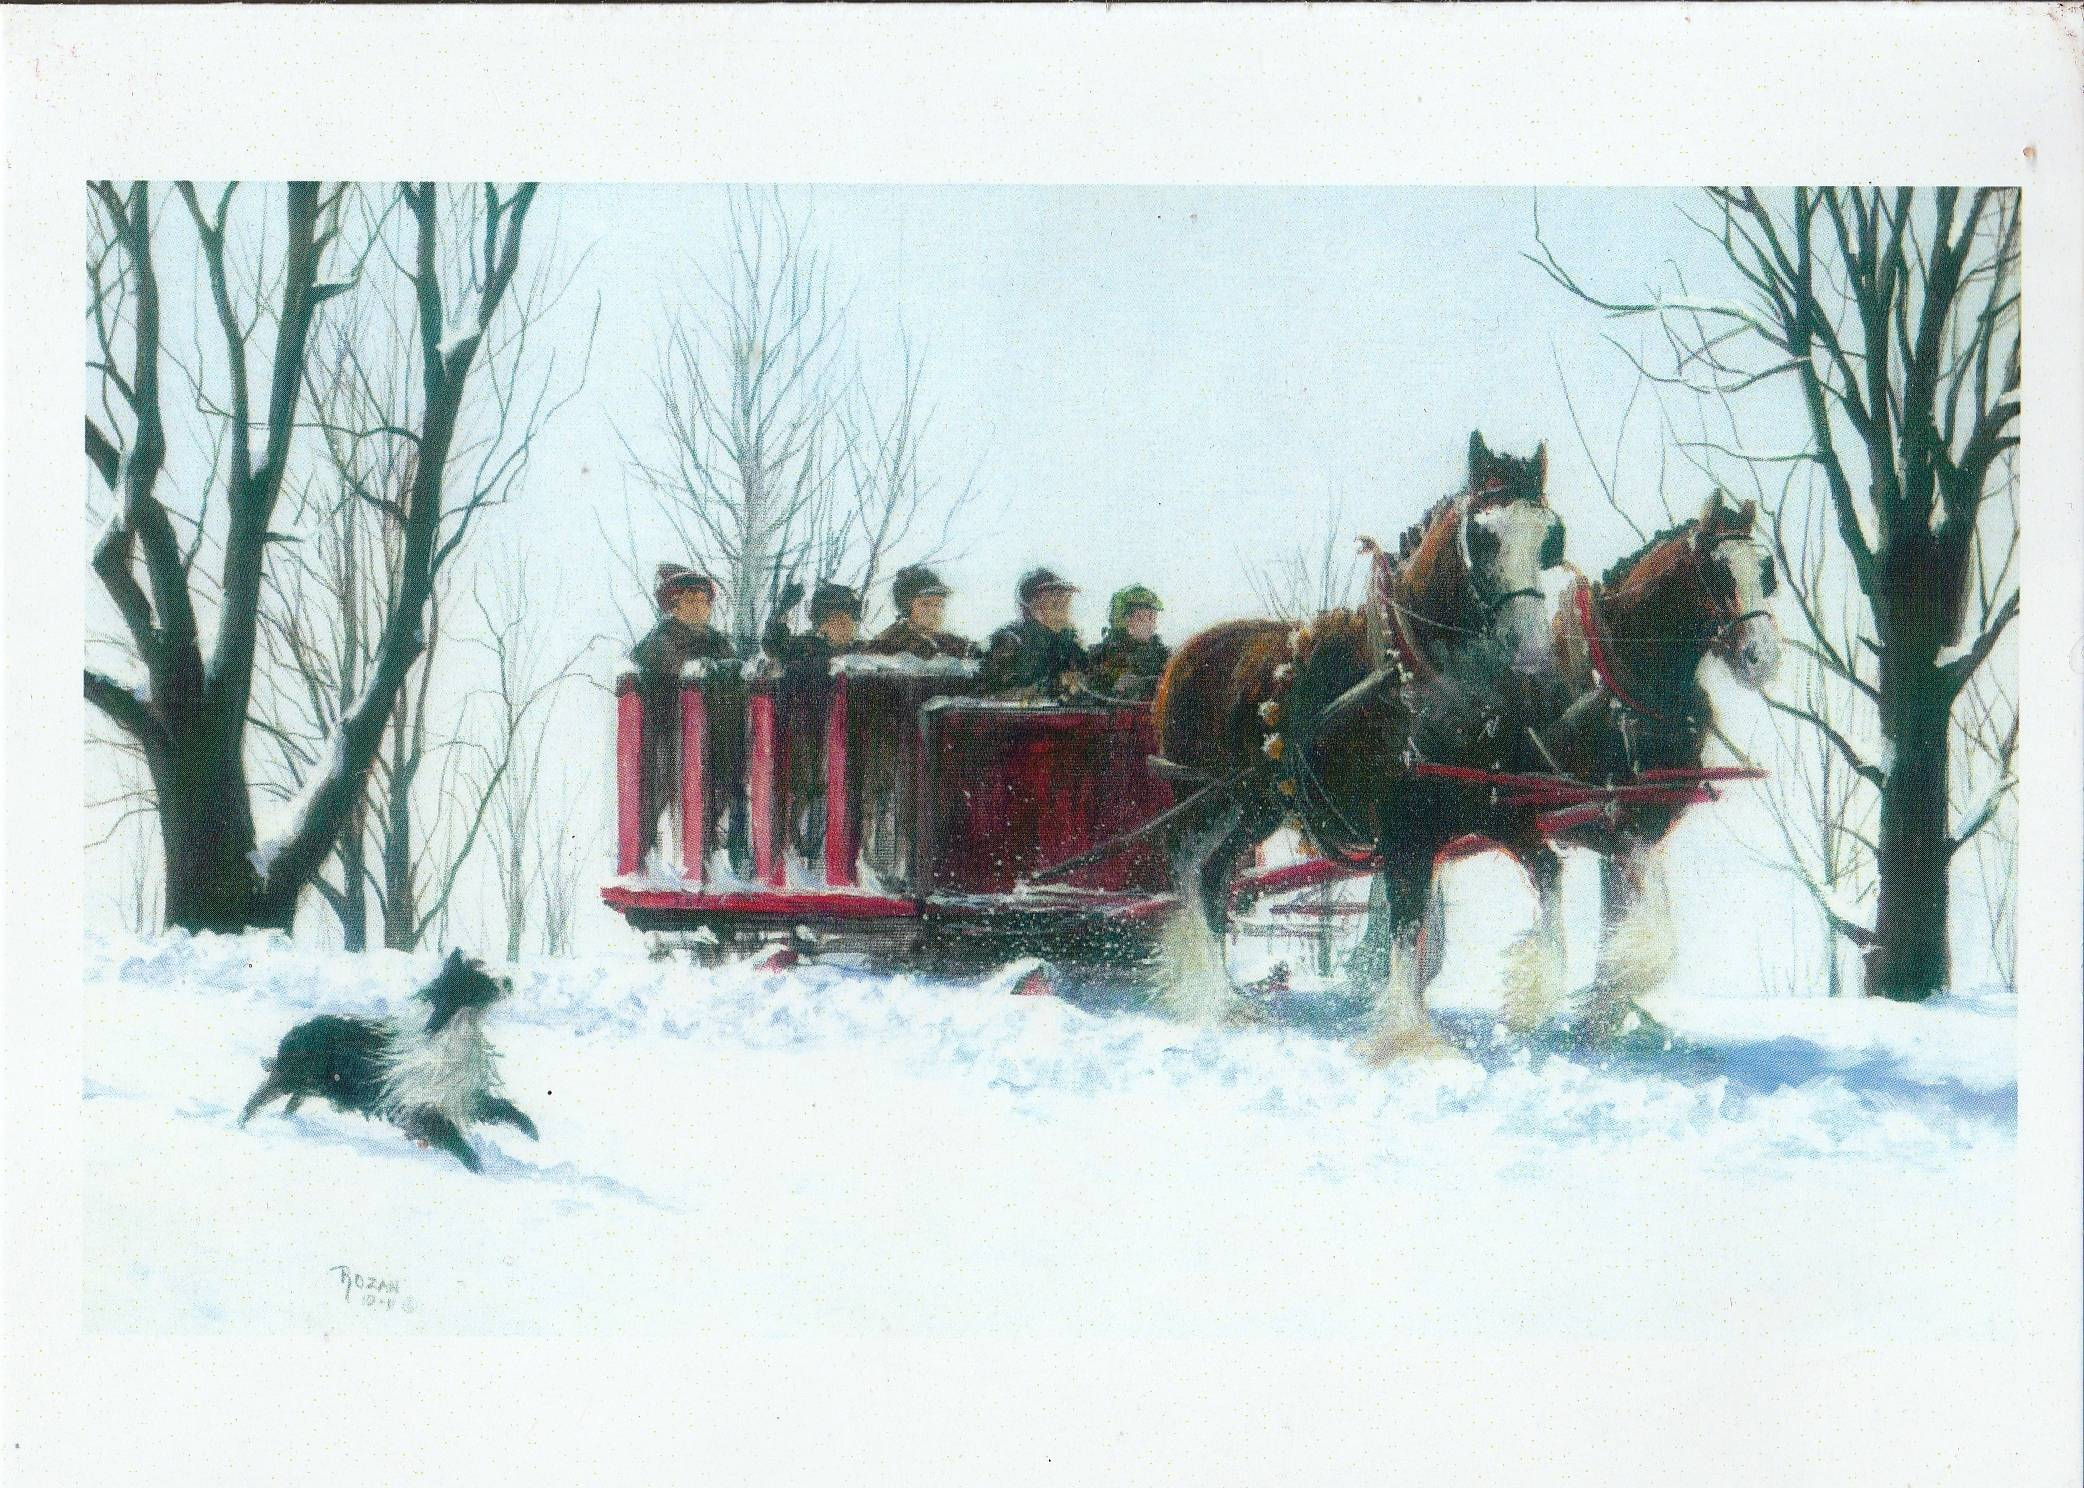 Early morning sleigh ride